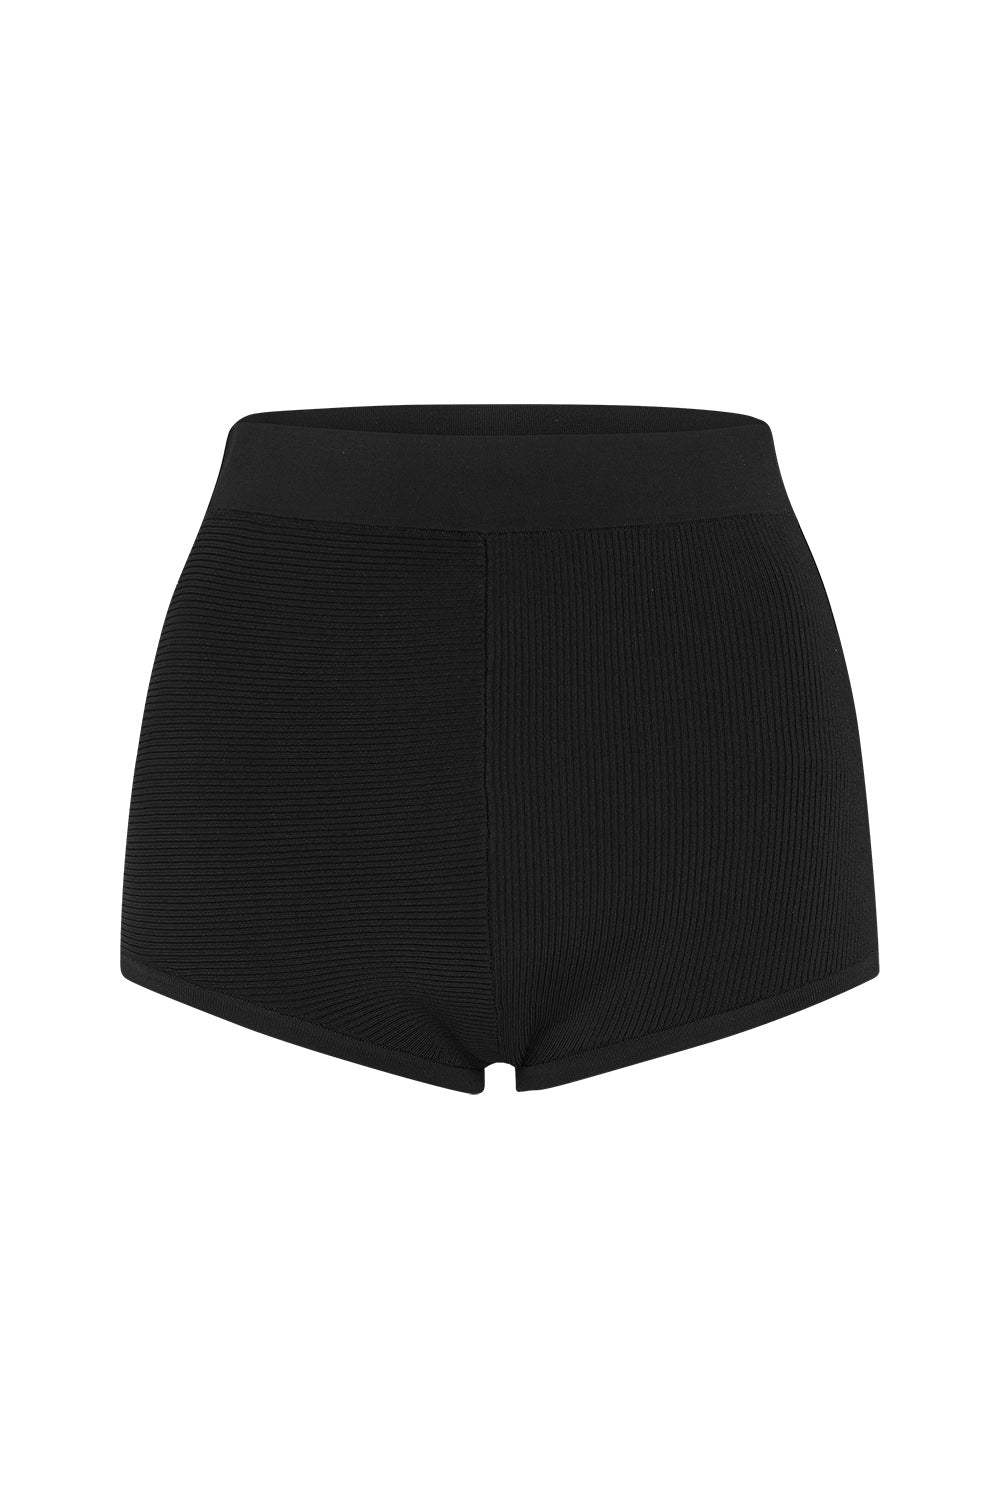 SIR the label ANNIKA BRIEF BLACK